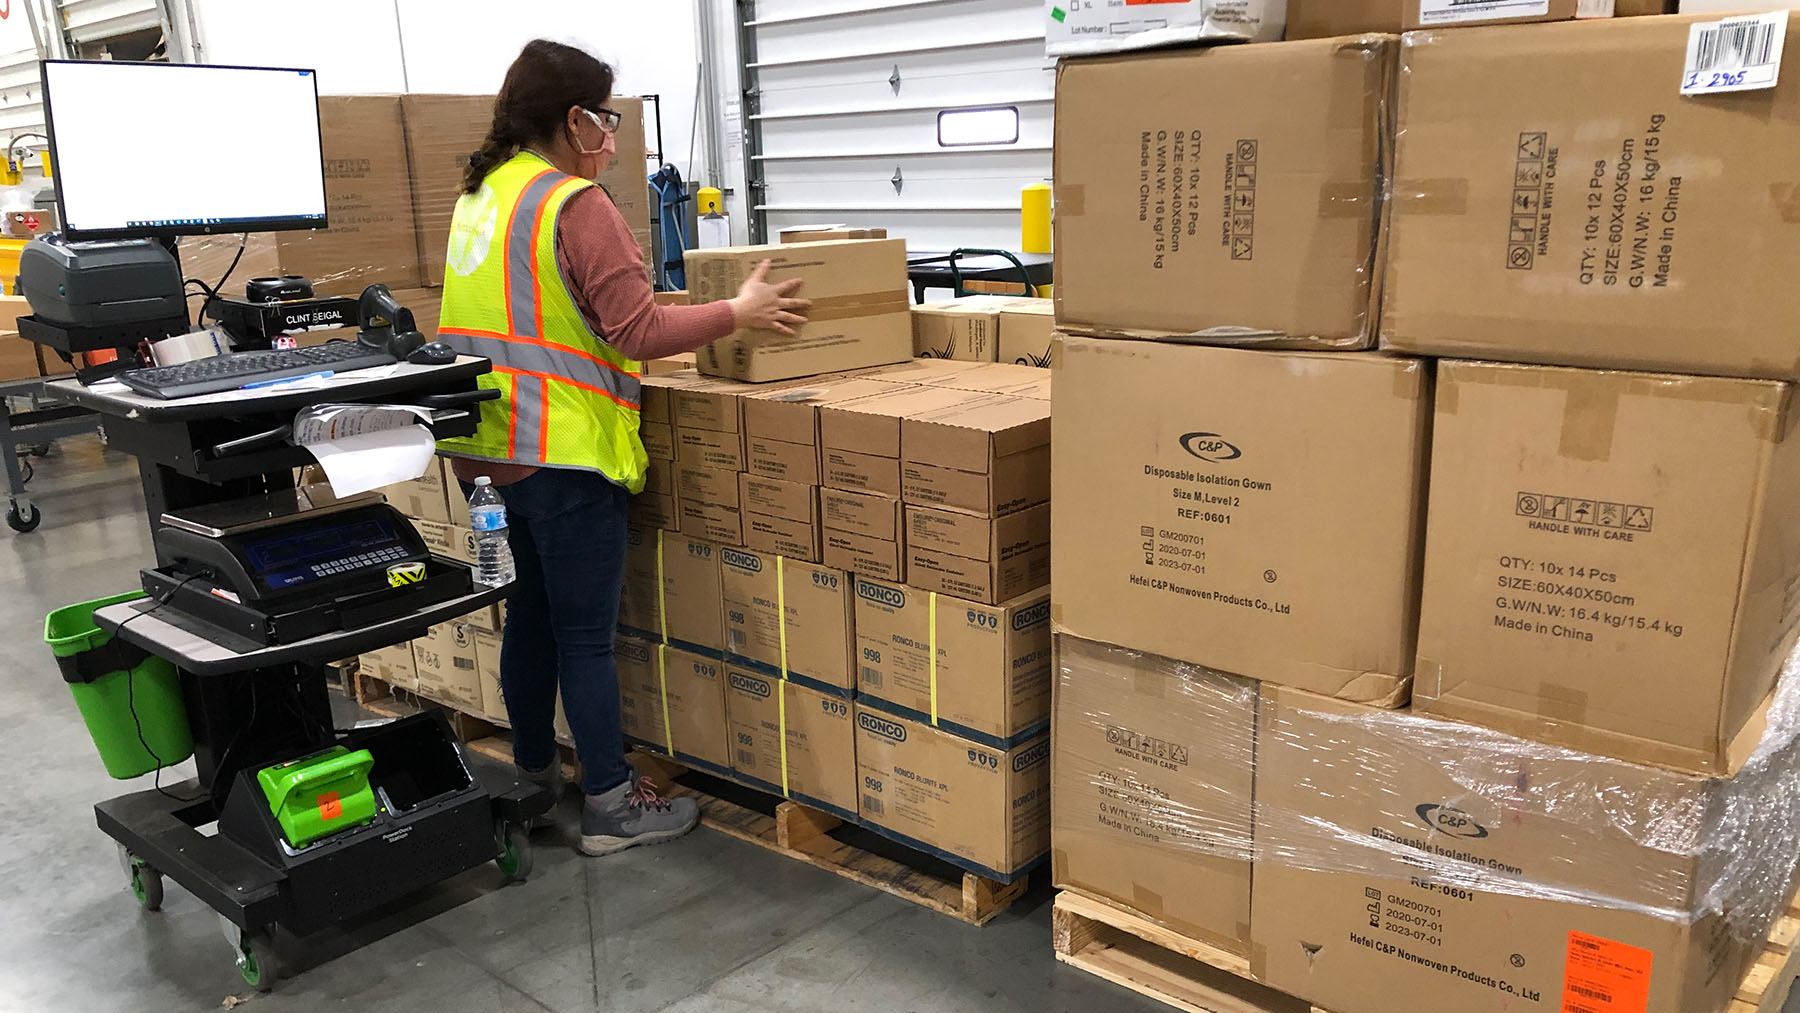 Protective gear, including isolation gowns and gloves, is staged for shipment in Direct Relief's warehouse on Nov. 5, 2020. Health facilities across the U.S. have continued requesting PPE and other medical essentials as Covid-19 cases spike. (Maeve O'Connor/Direct Relief)